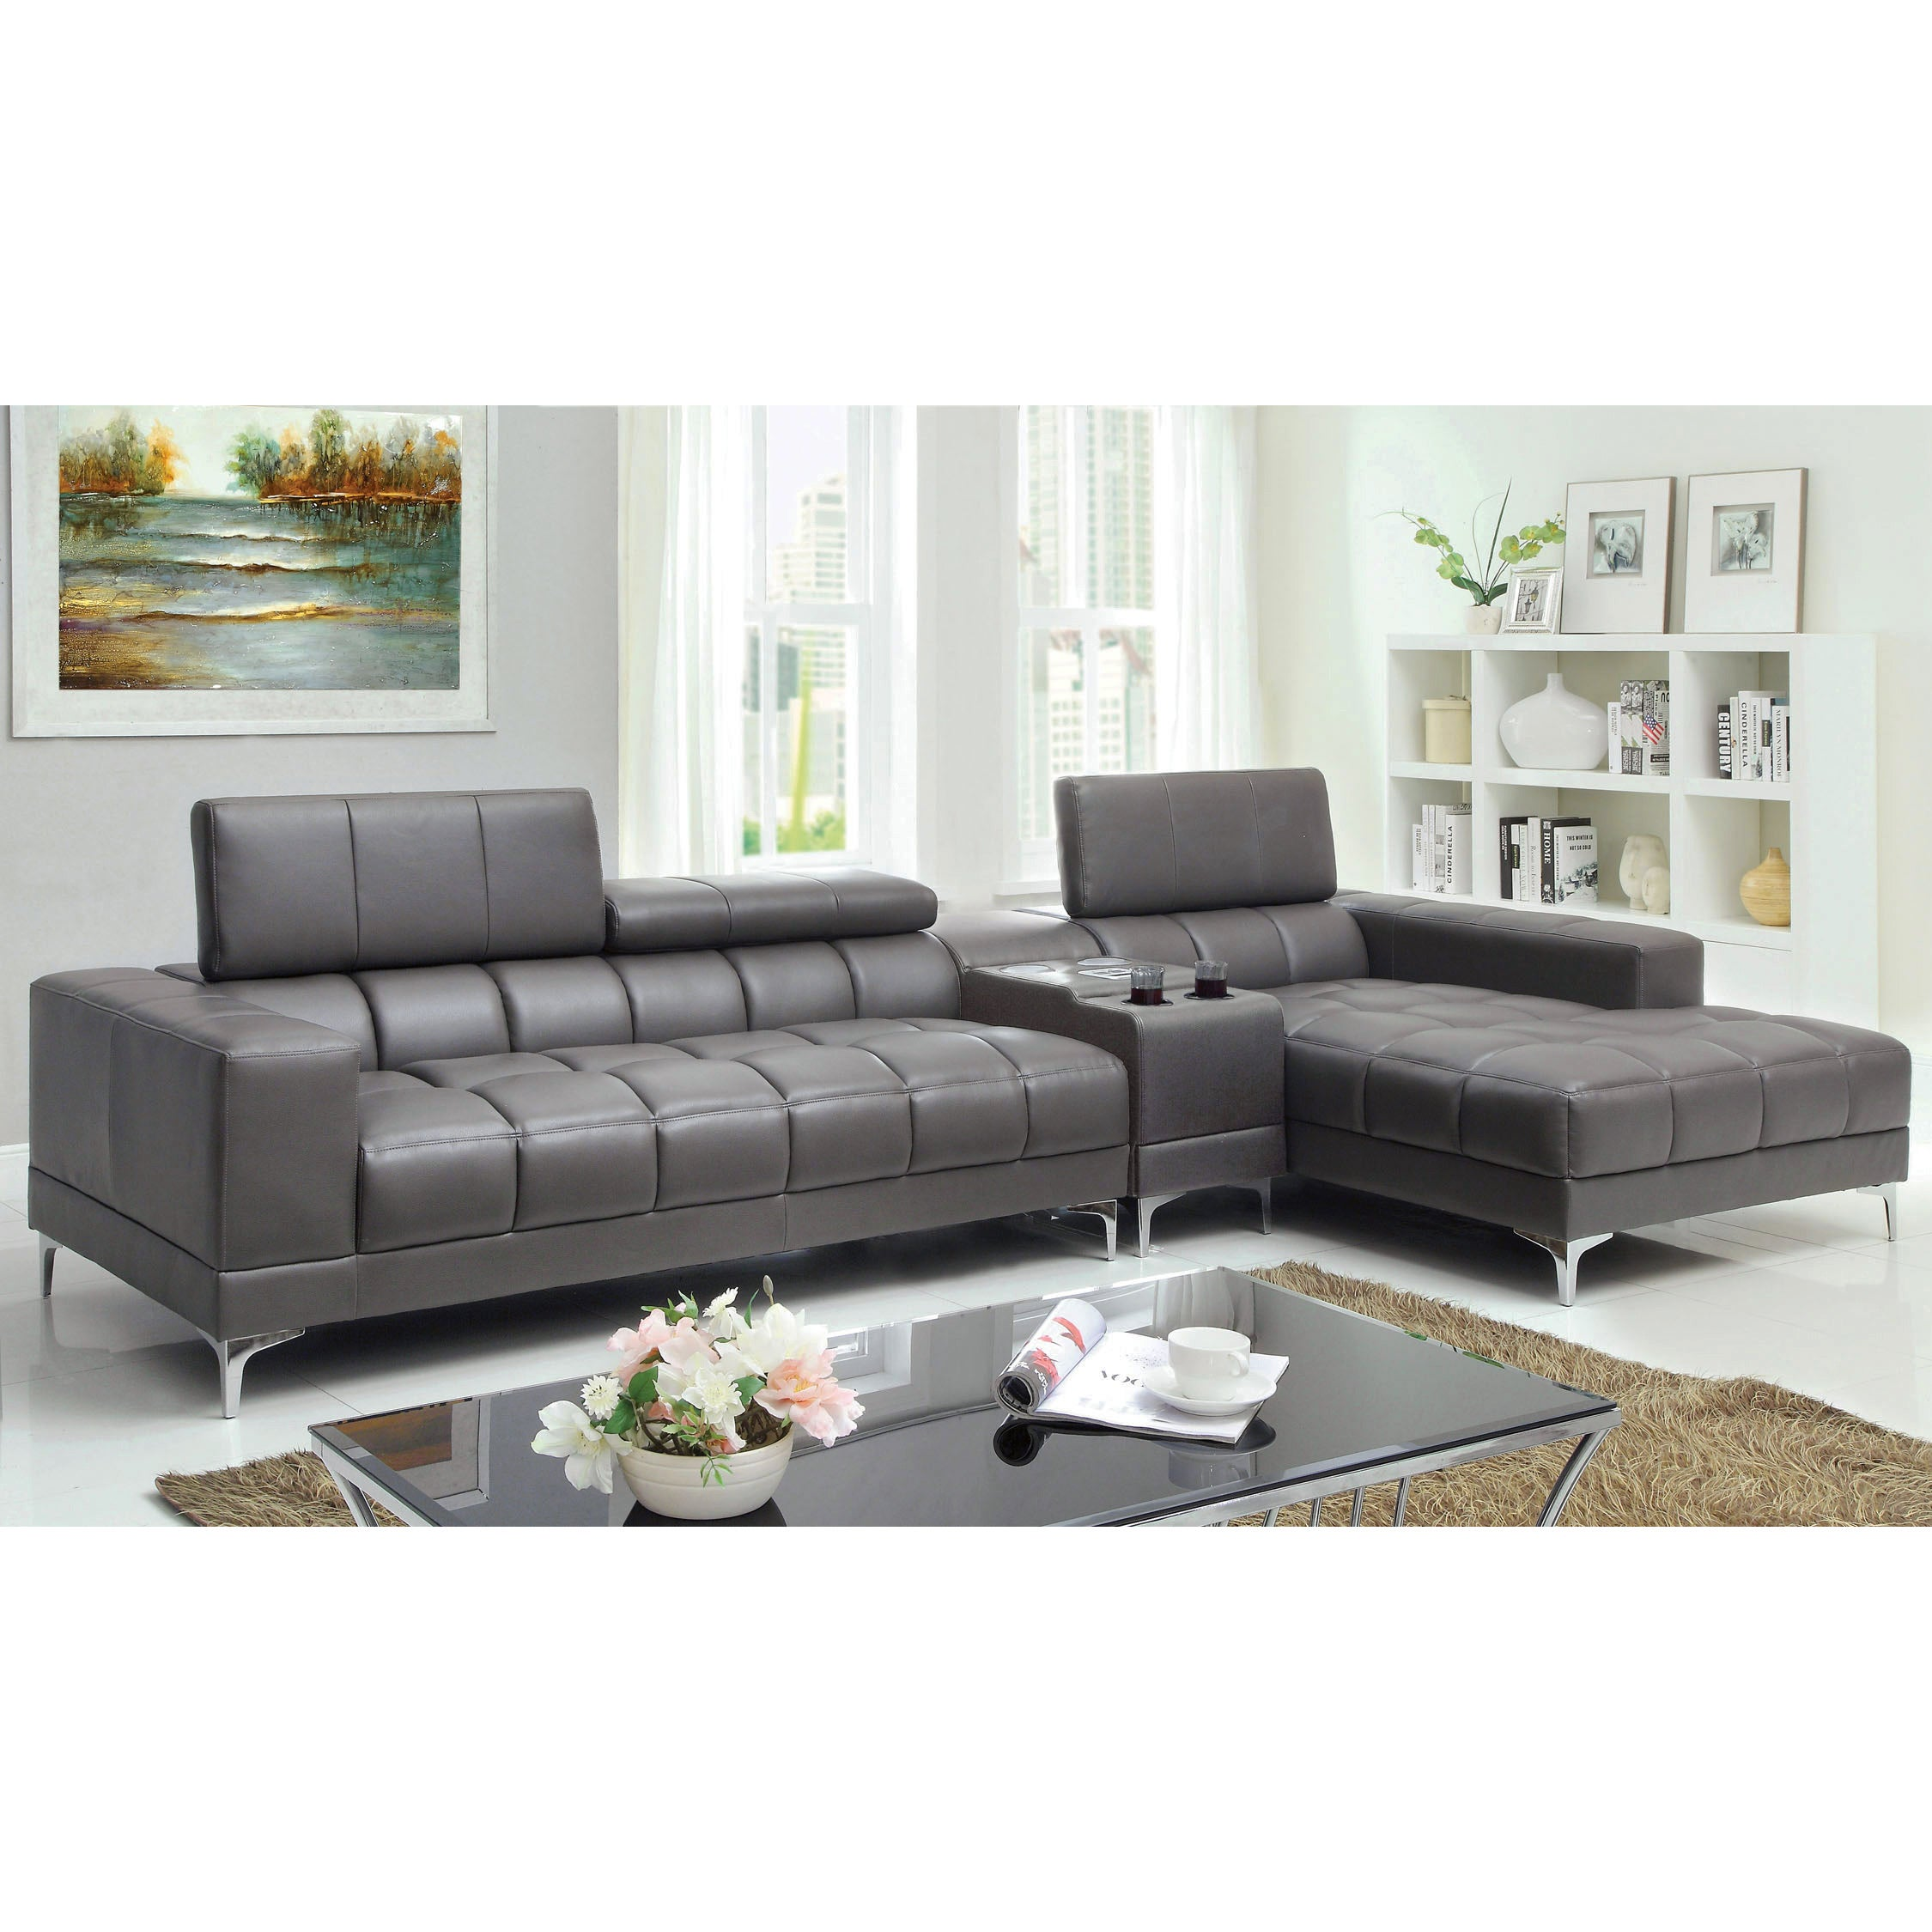 Brilliant Furniture Of America Bourlette Grey Leather 2 Piece Sectional Ibusinesslaw Wood Chair Design Ideas Ibusinesslaworg